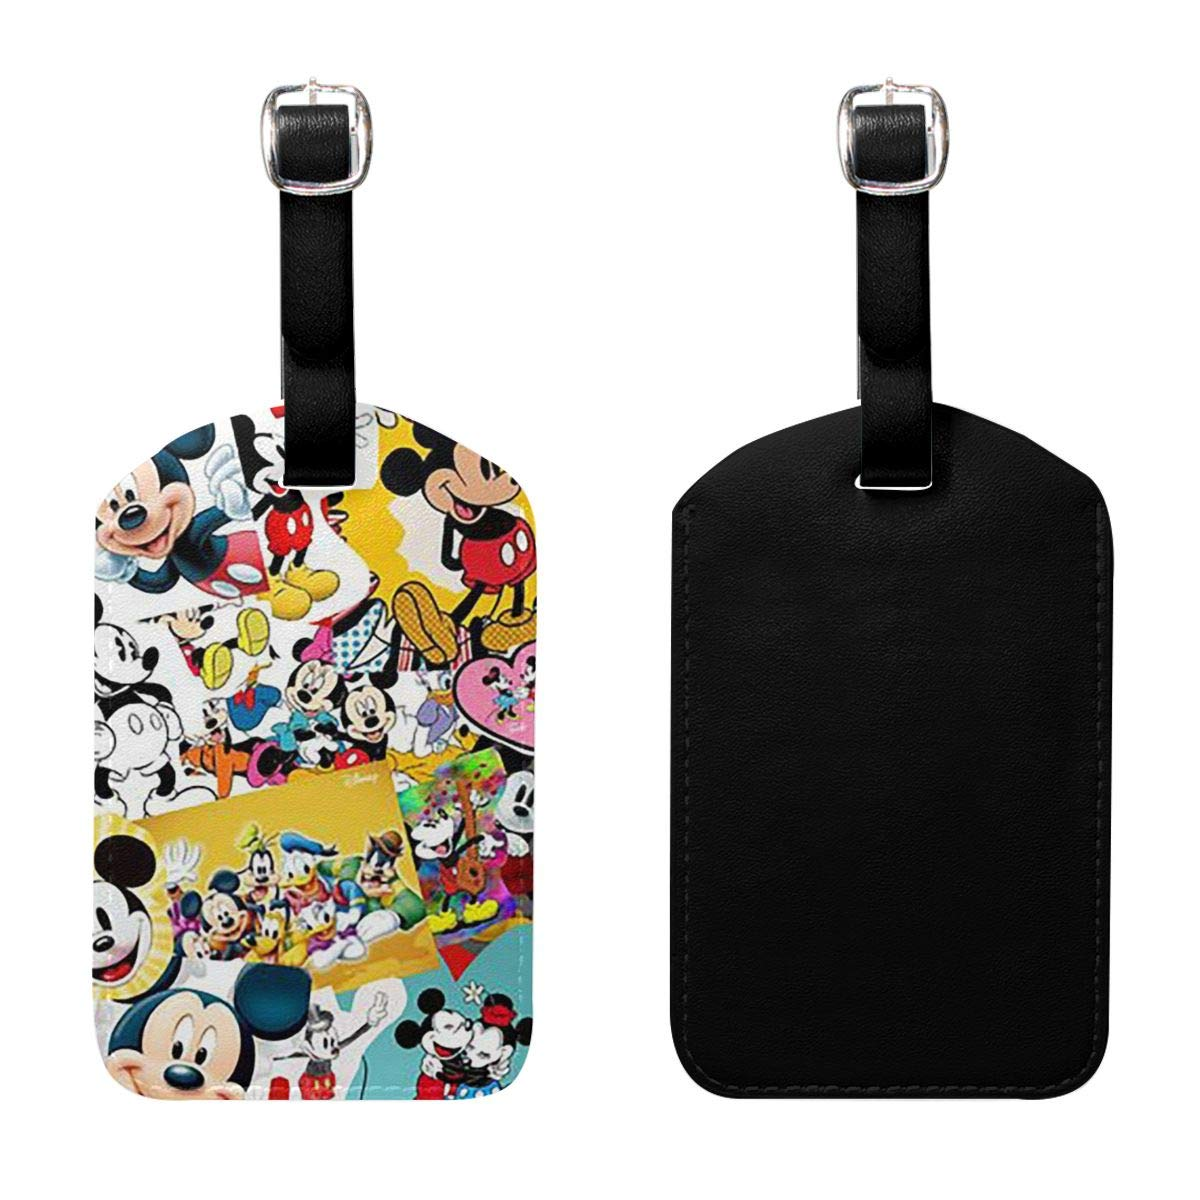 PU Leather Luggage Tags Mickey Mouse Family Suitcase Labels Bag Adjustable Leather Strap Travel Accessories Set of 2